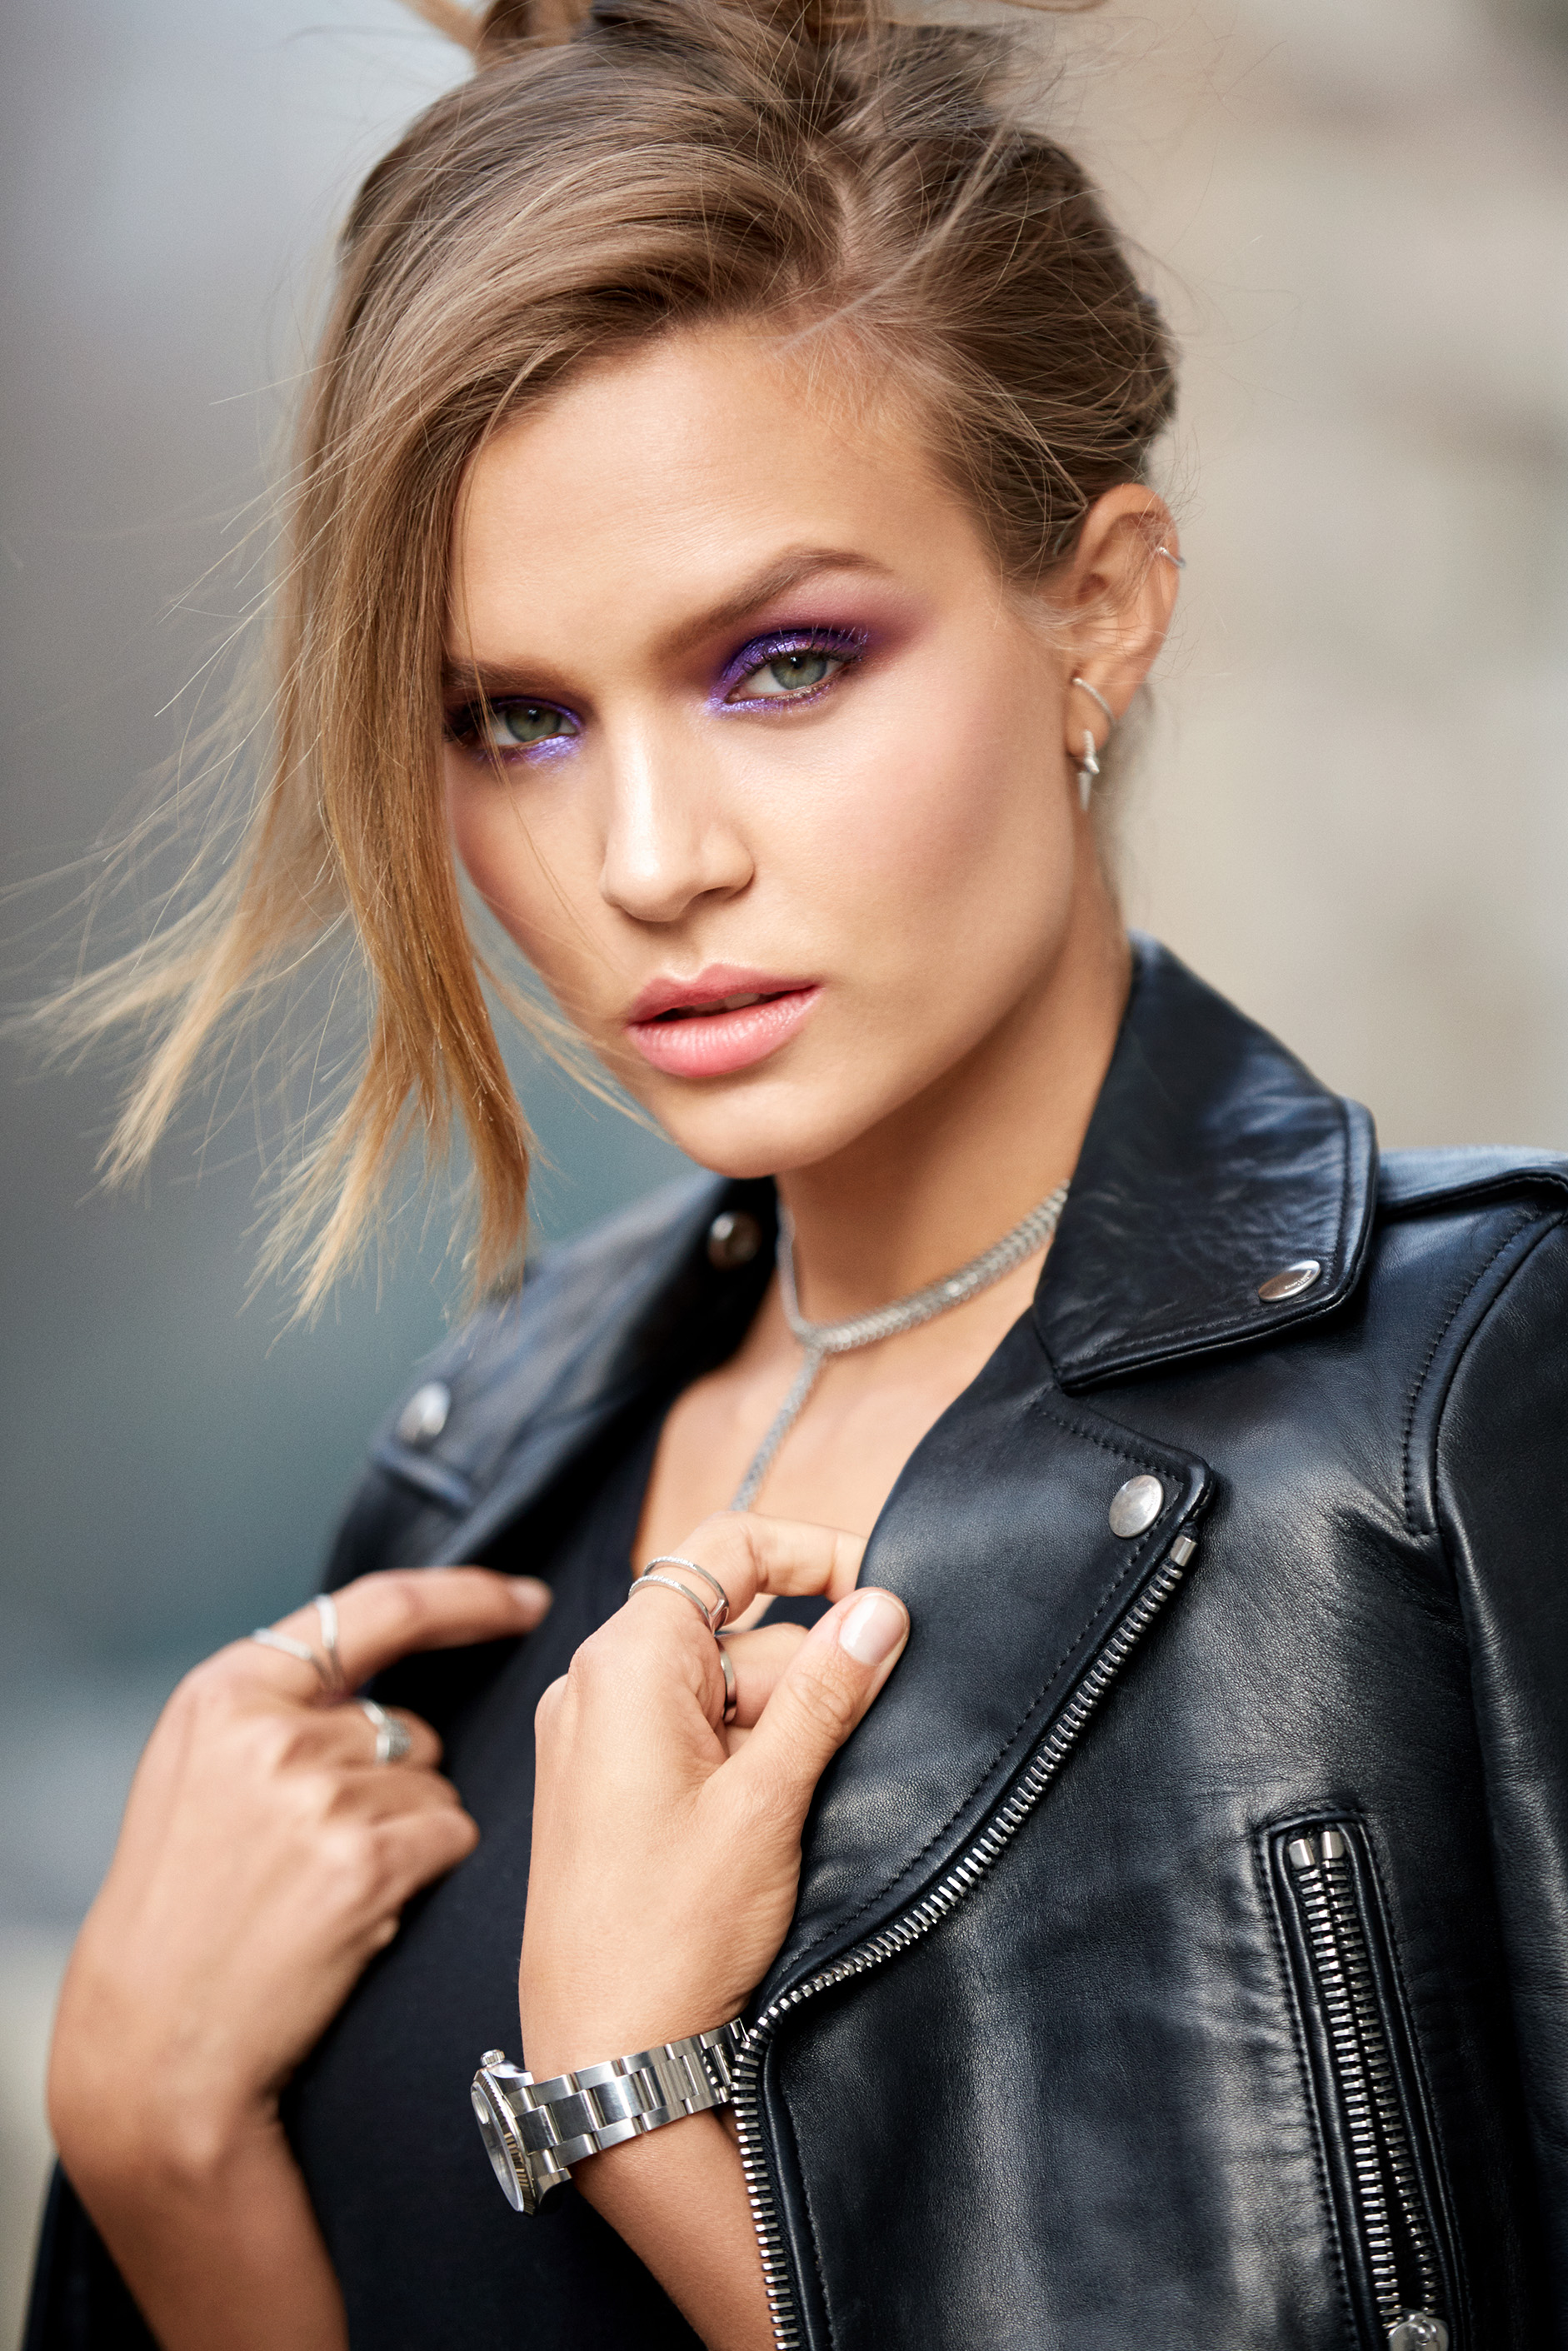 Η Josephine Skriver είναι η νέα μούσα της Maybelline New York! | tlife.gr